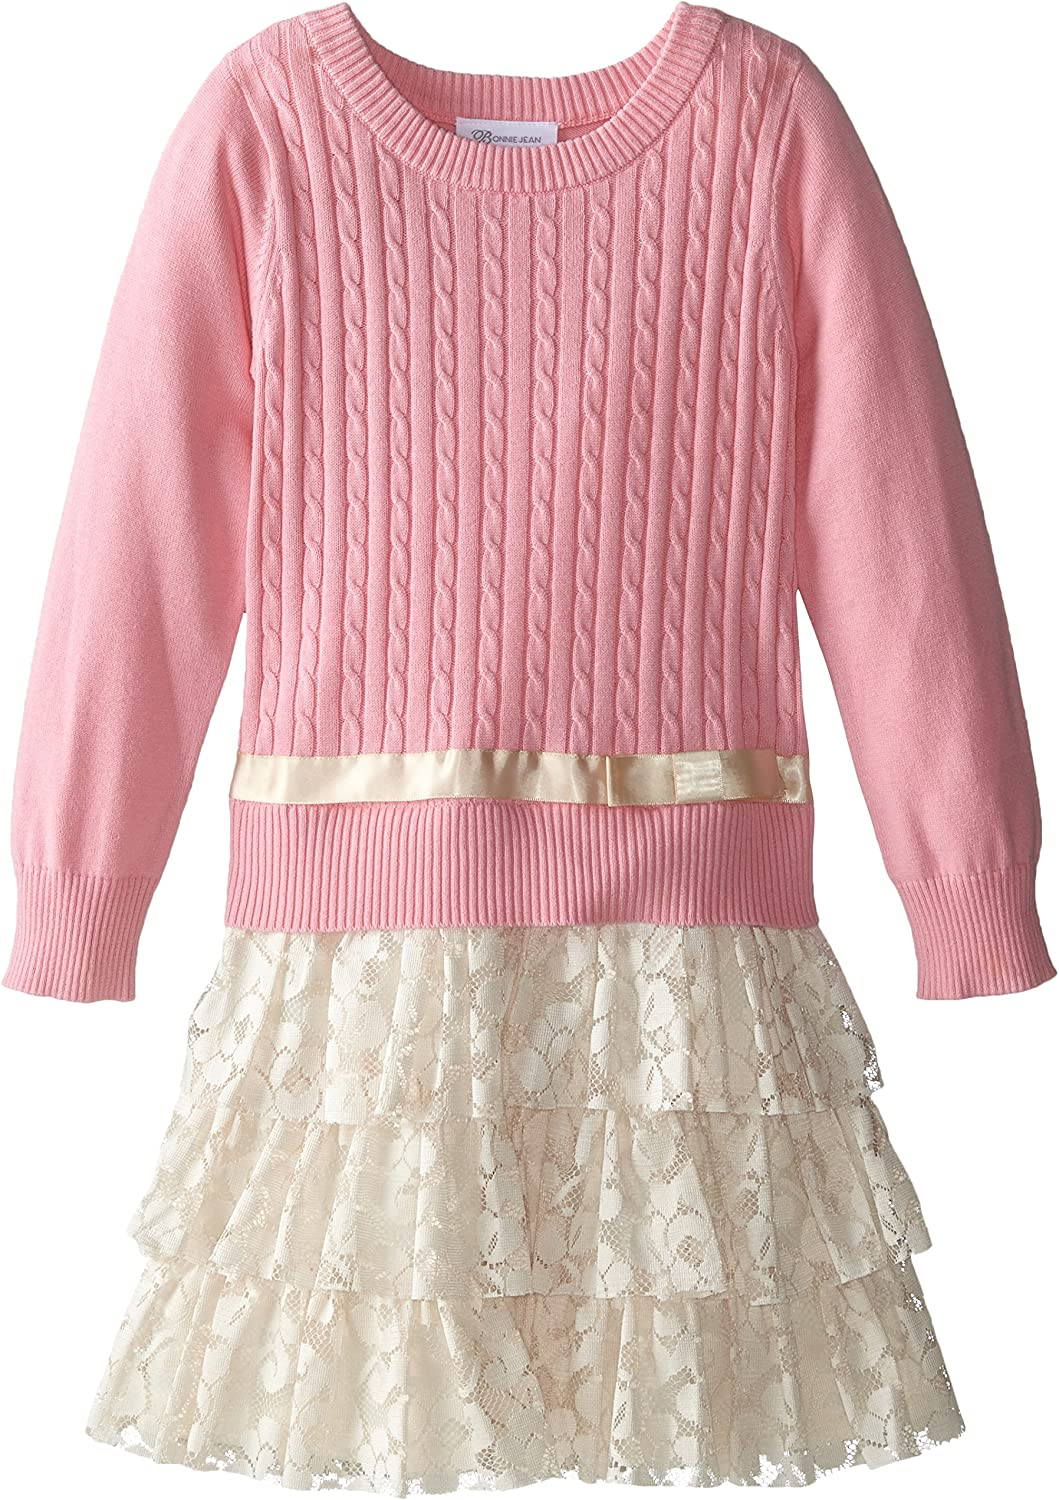 Bonnie Jean Girls' Cable Knit Sweater and Lace Skirt Dress